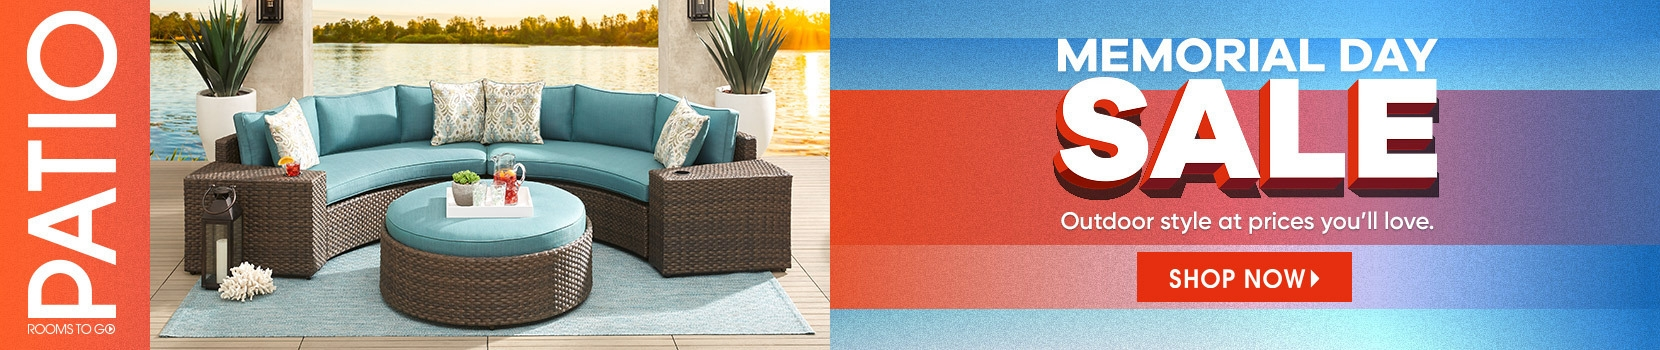 Rooms to go patio. Memorial Day sale. outdoor style at prices you'll love. shop now.